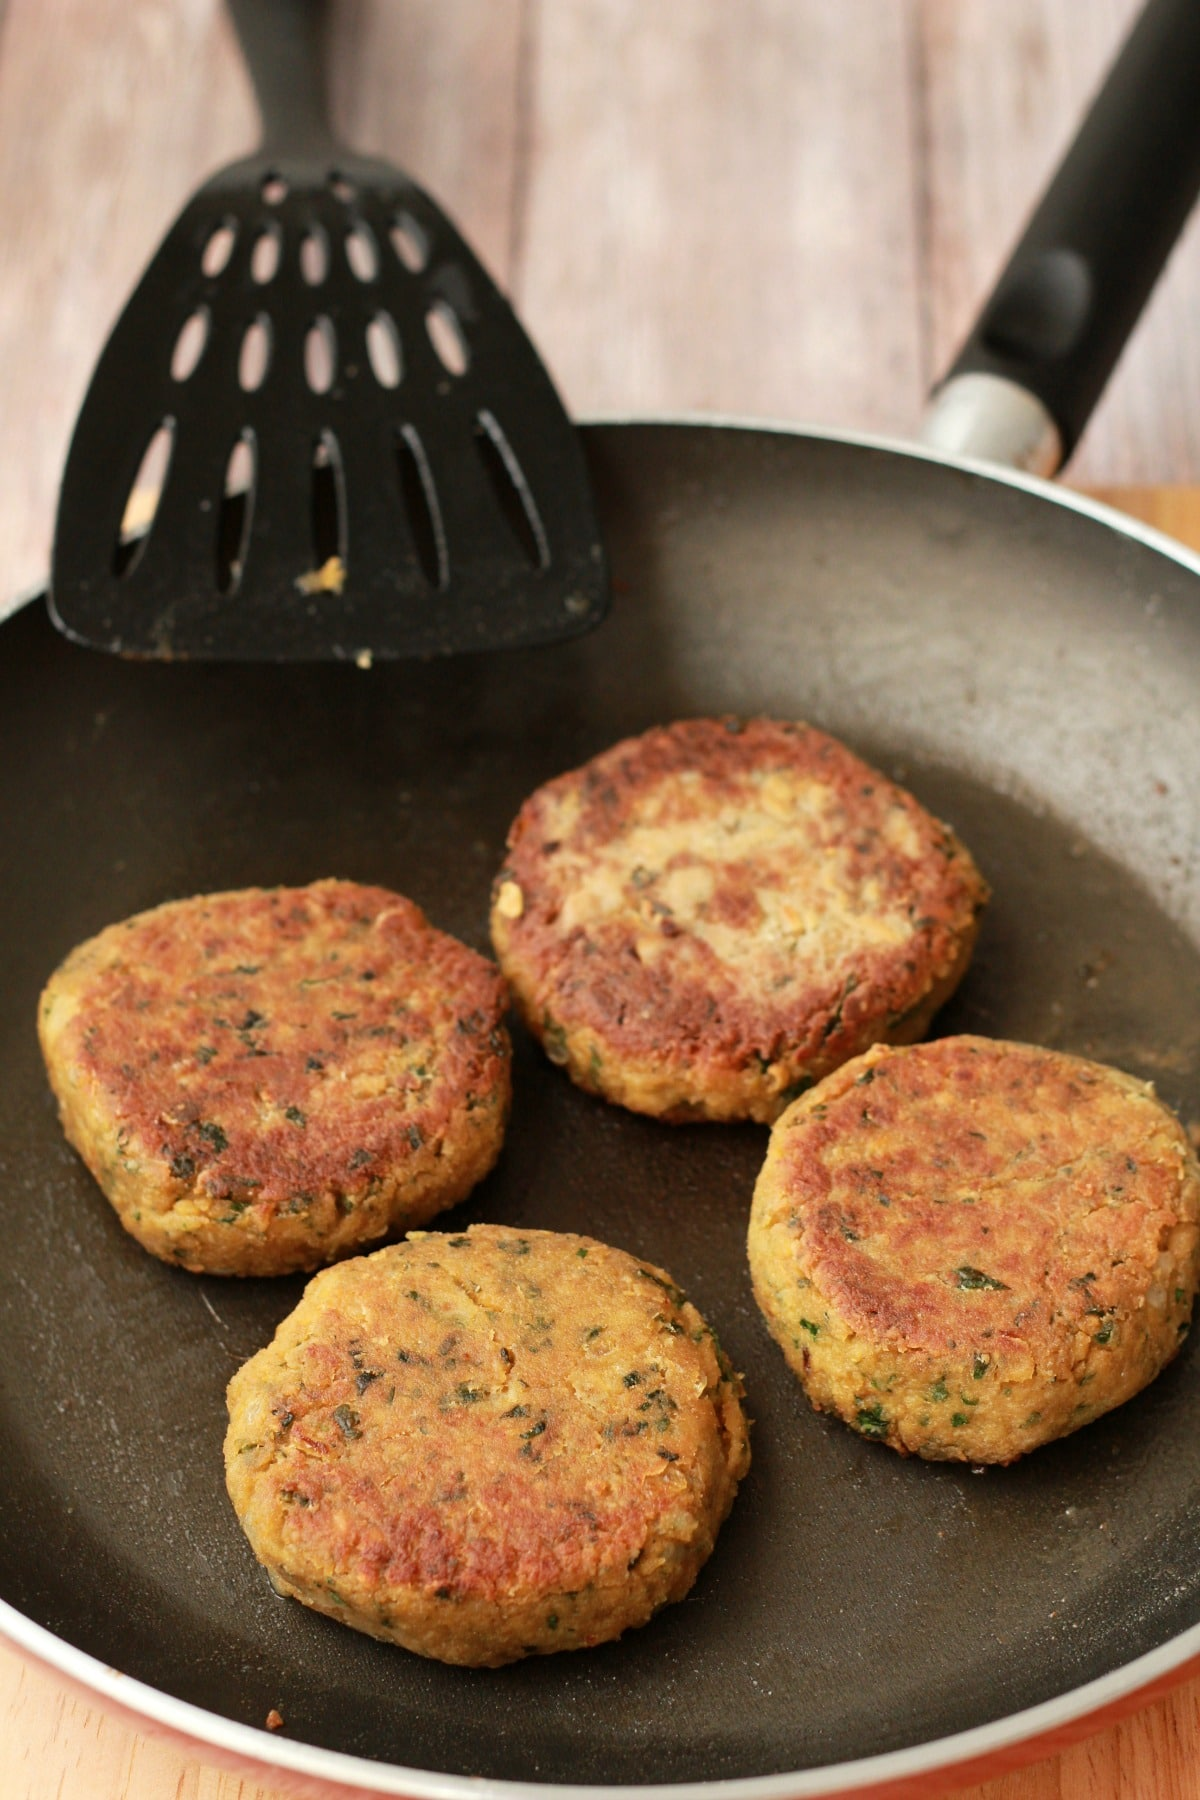 Vegan chickpea burgers nicely browned in a frying pan with a spatula.